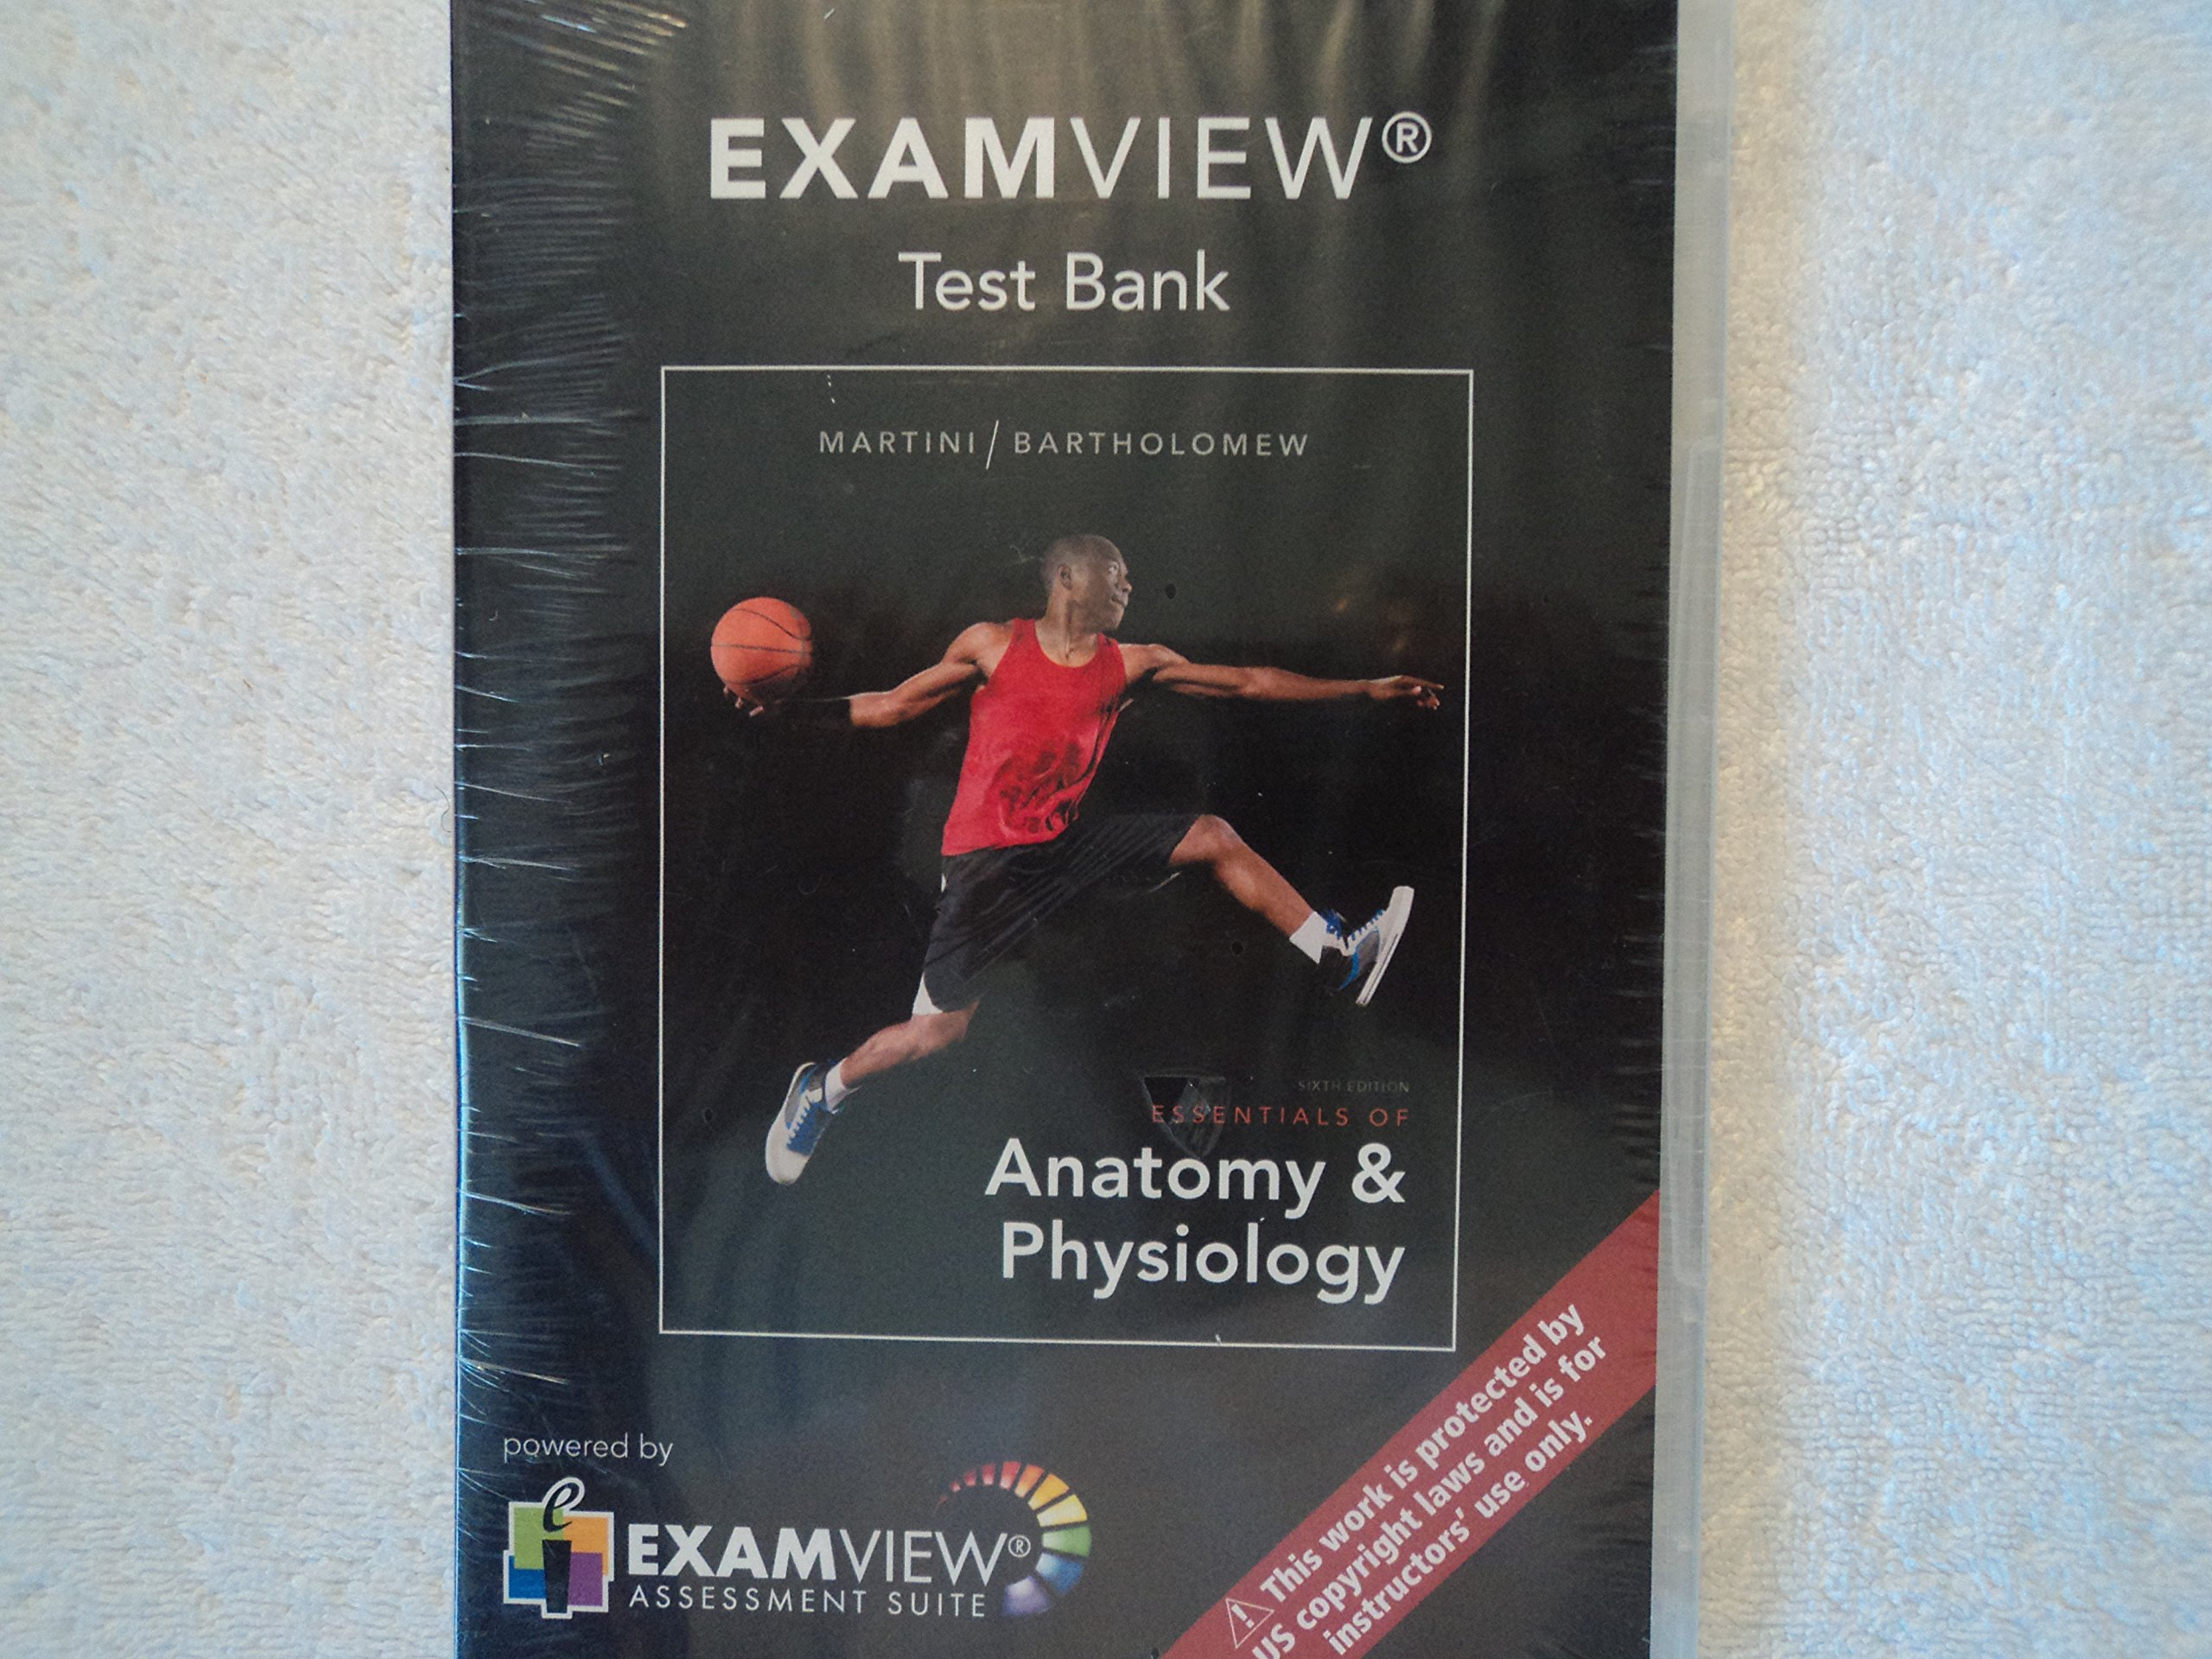 Examview Test Bank: Essentials of Anatomy & Physiology: Bartholomew ...